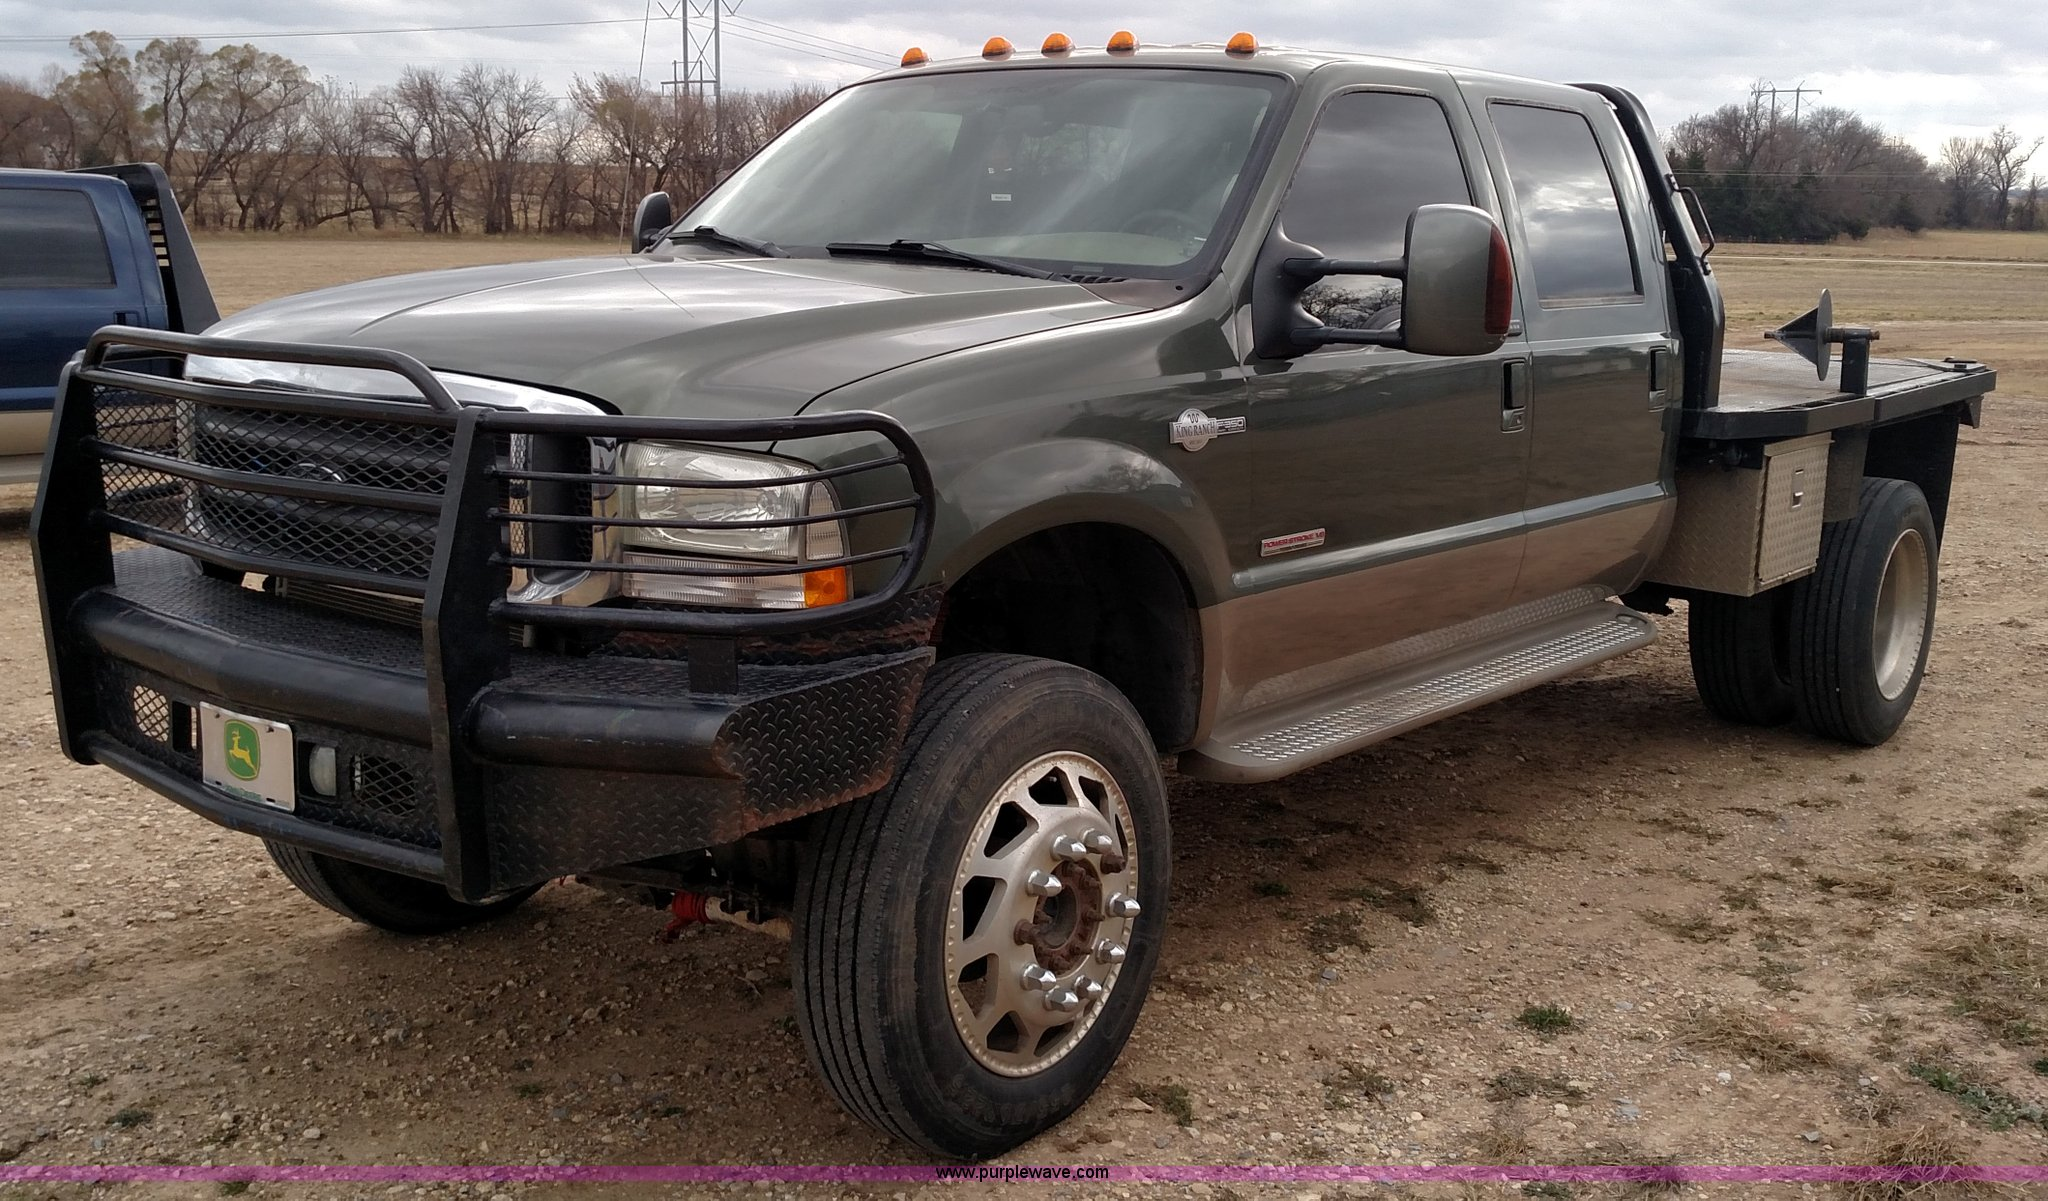 2004 Ford F350 Super Duty Lariat King Ranch Crew Cab flatbed